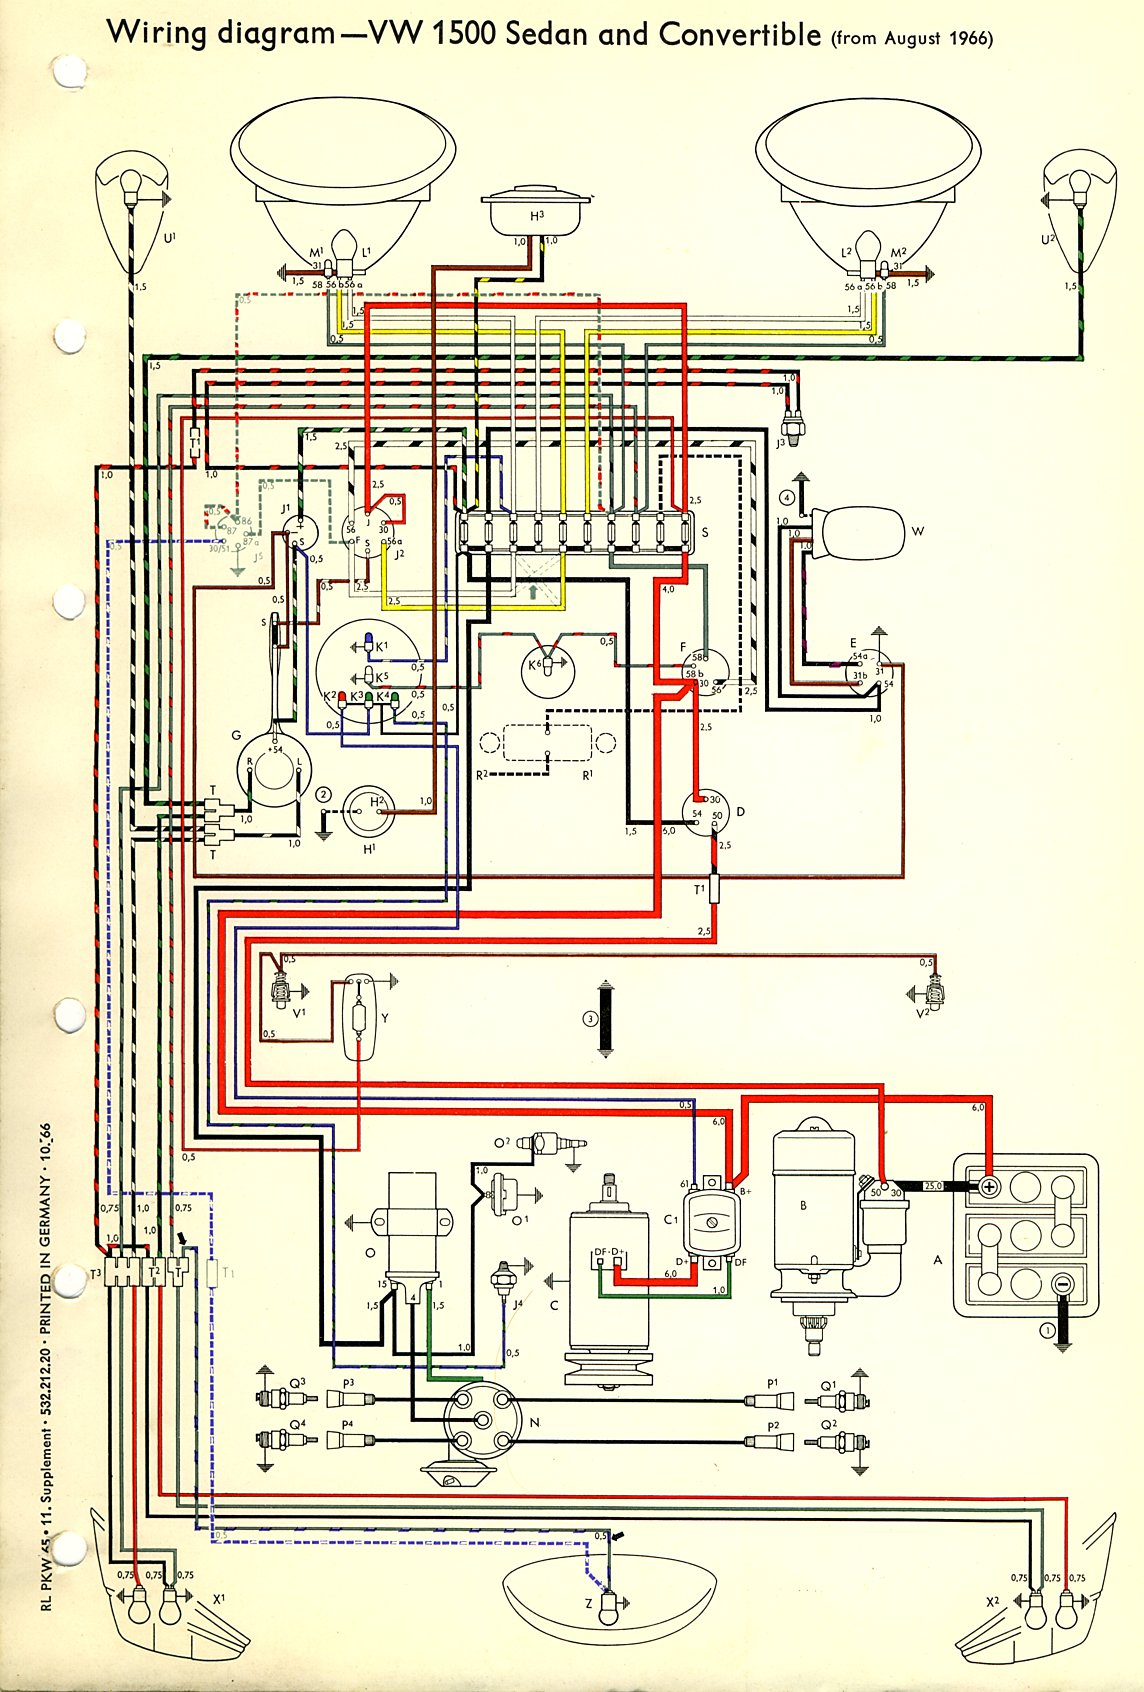 Vw bug wiring diagram vw bug wiring diagram wiring diagrams thesamba com type 1 wiring diagrams vw beetle wiring diagram 1974 vw bug wiring diagram publicscrutiny Gallery